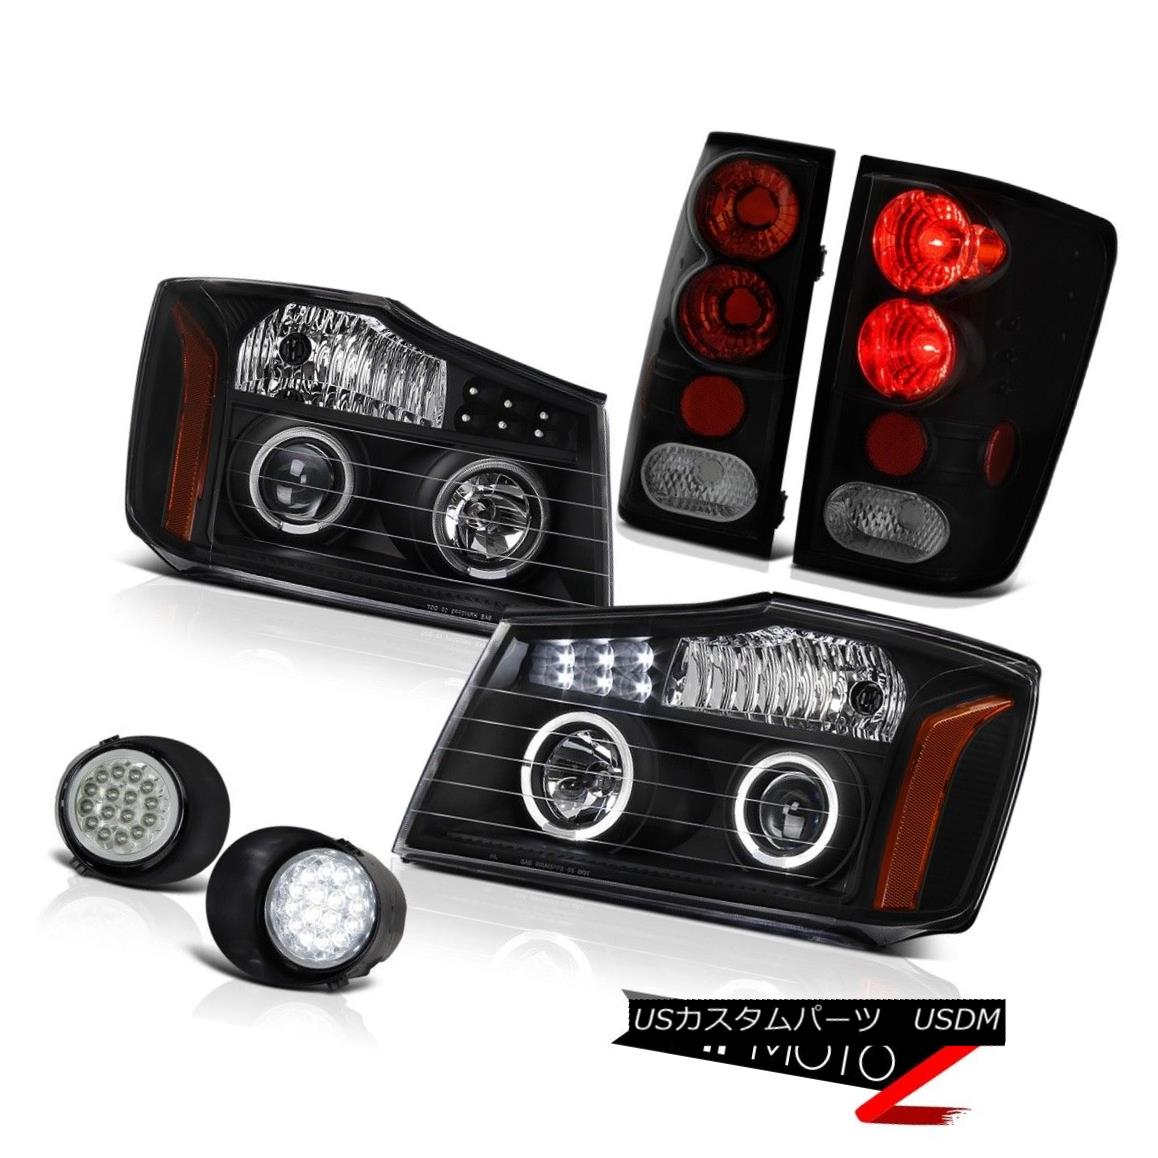 テールライト For 04-15 Titan SL 2x Halo Headlights Tail Lights Sinister Black LED SMD DRL Fog 04-15タイタンSL 2xハローヘッドライトテールライトSinister Black LED SMD DRLフォグ